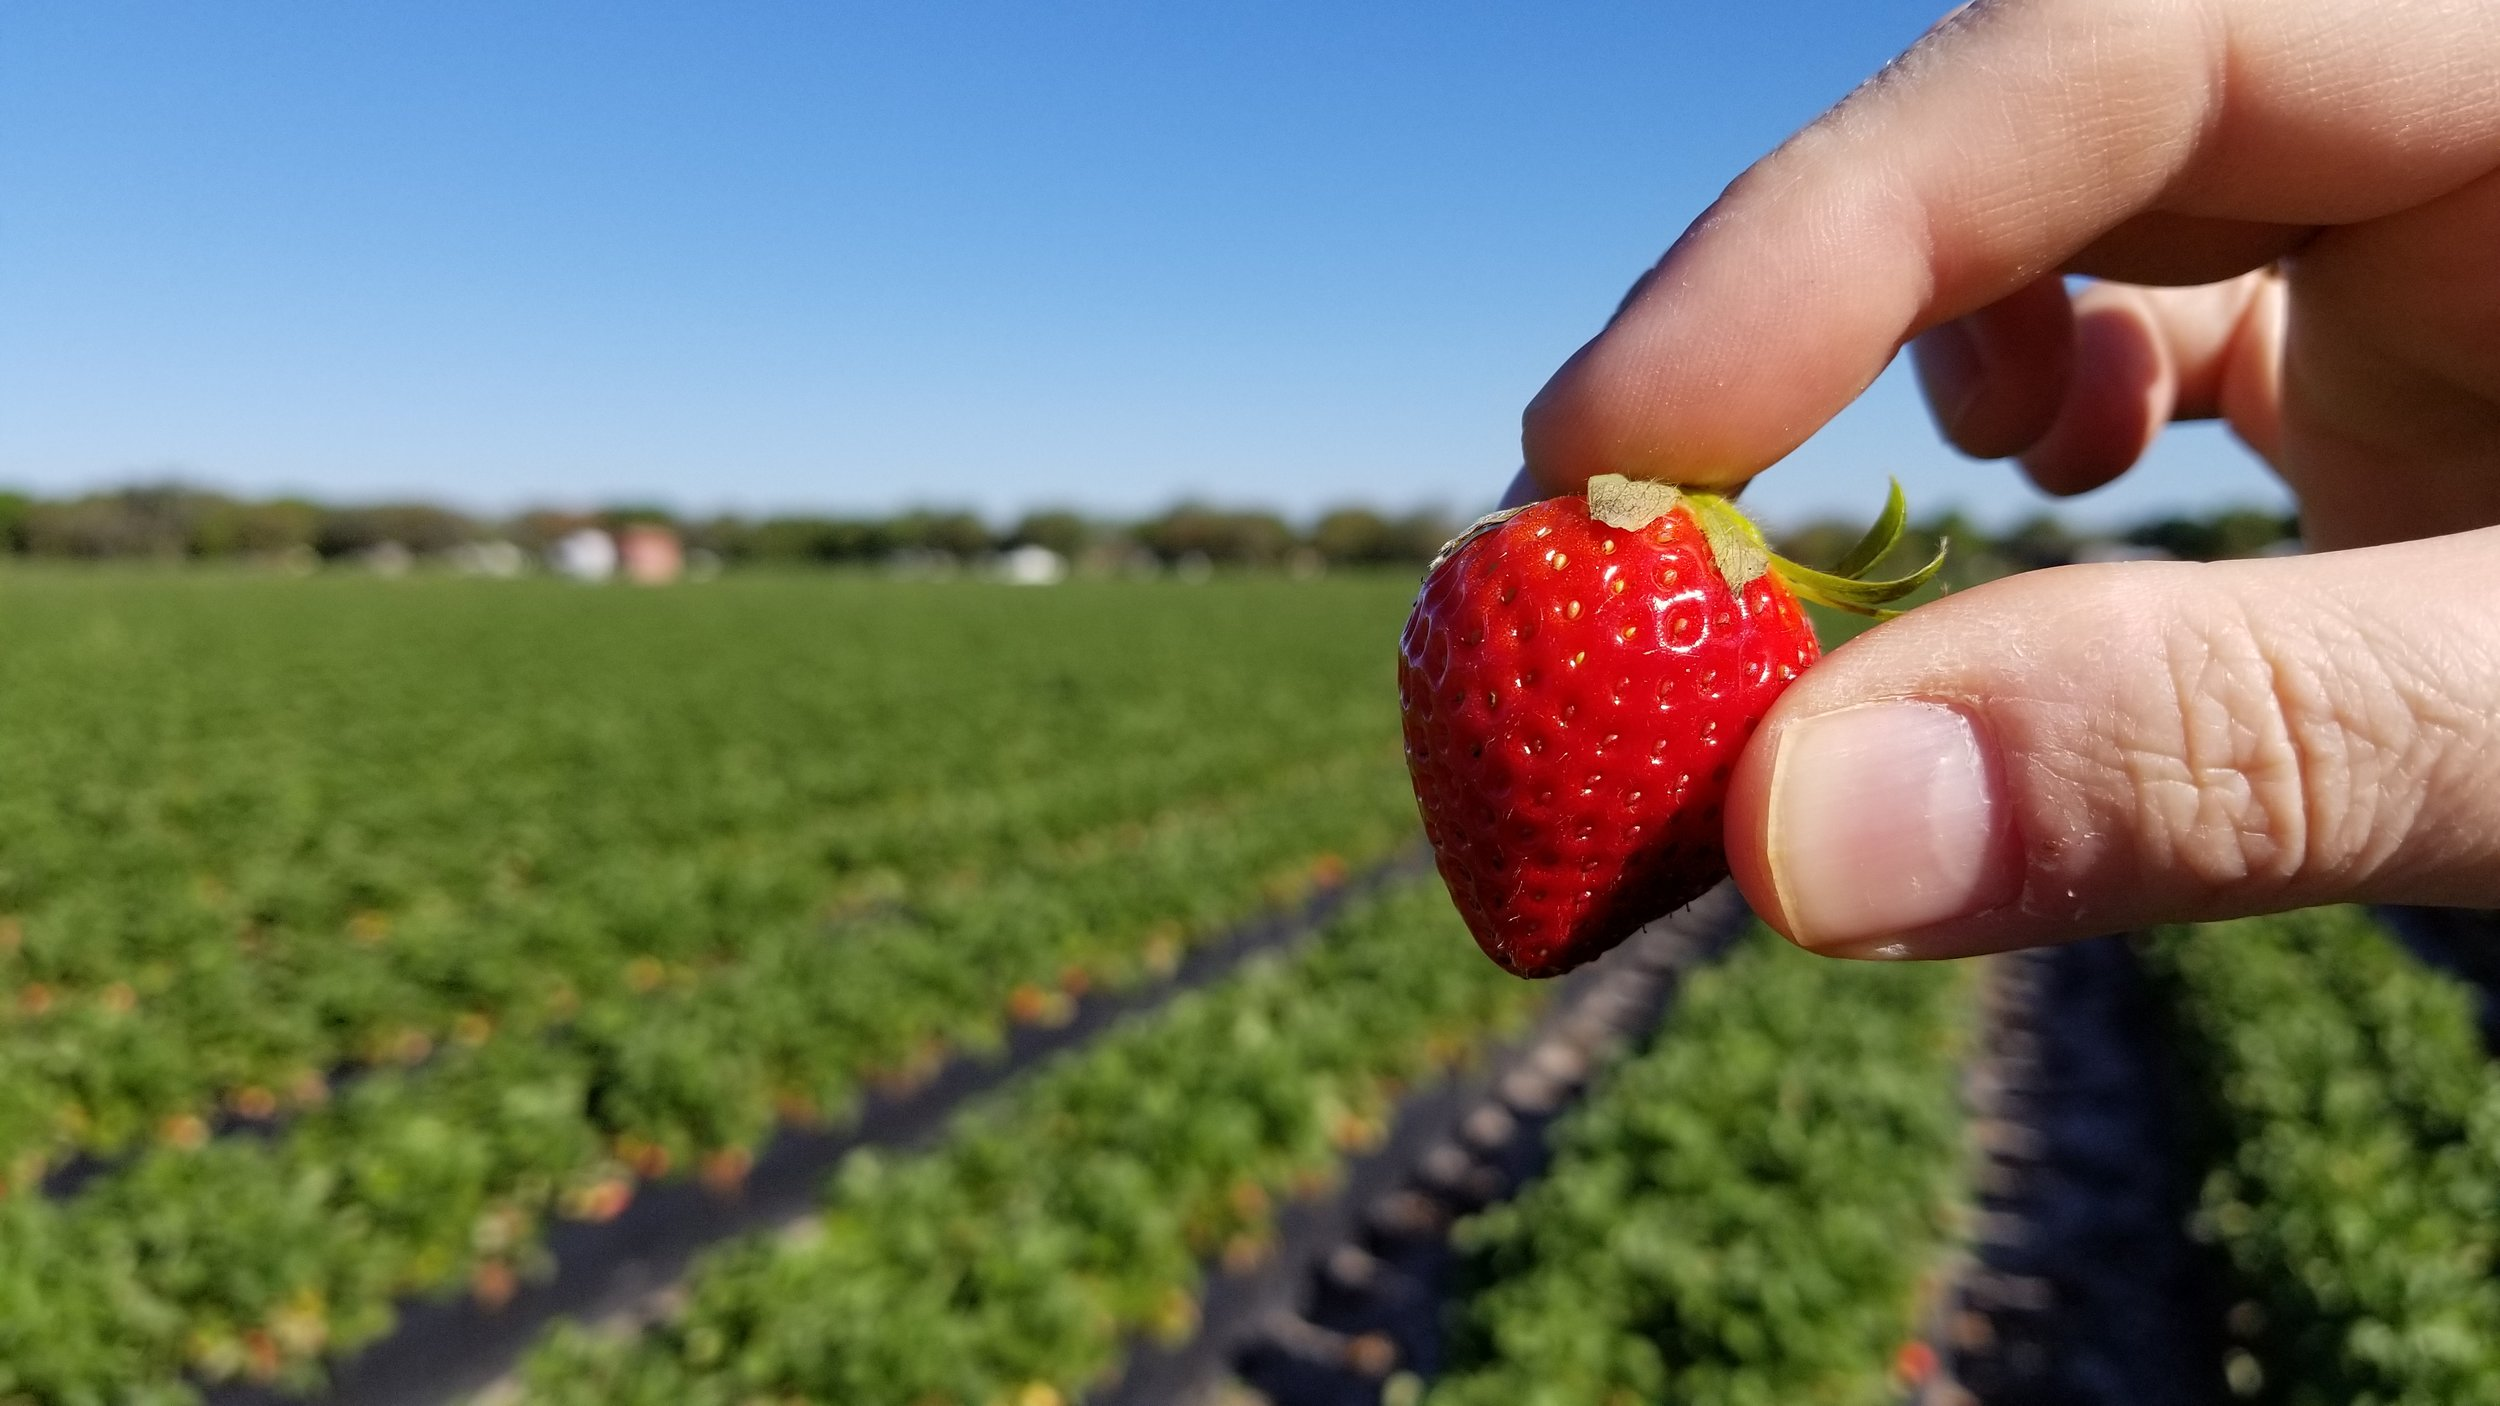 Strawberry fields forever at Fancy Farm in Plant City, Florida